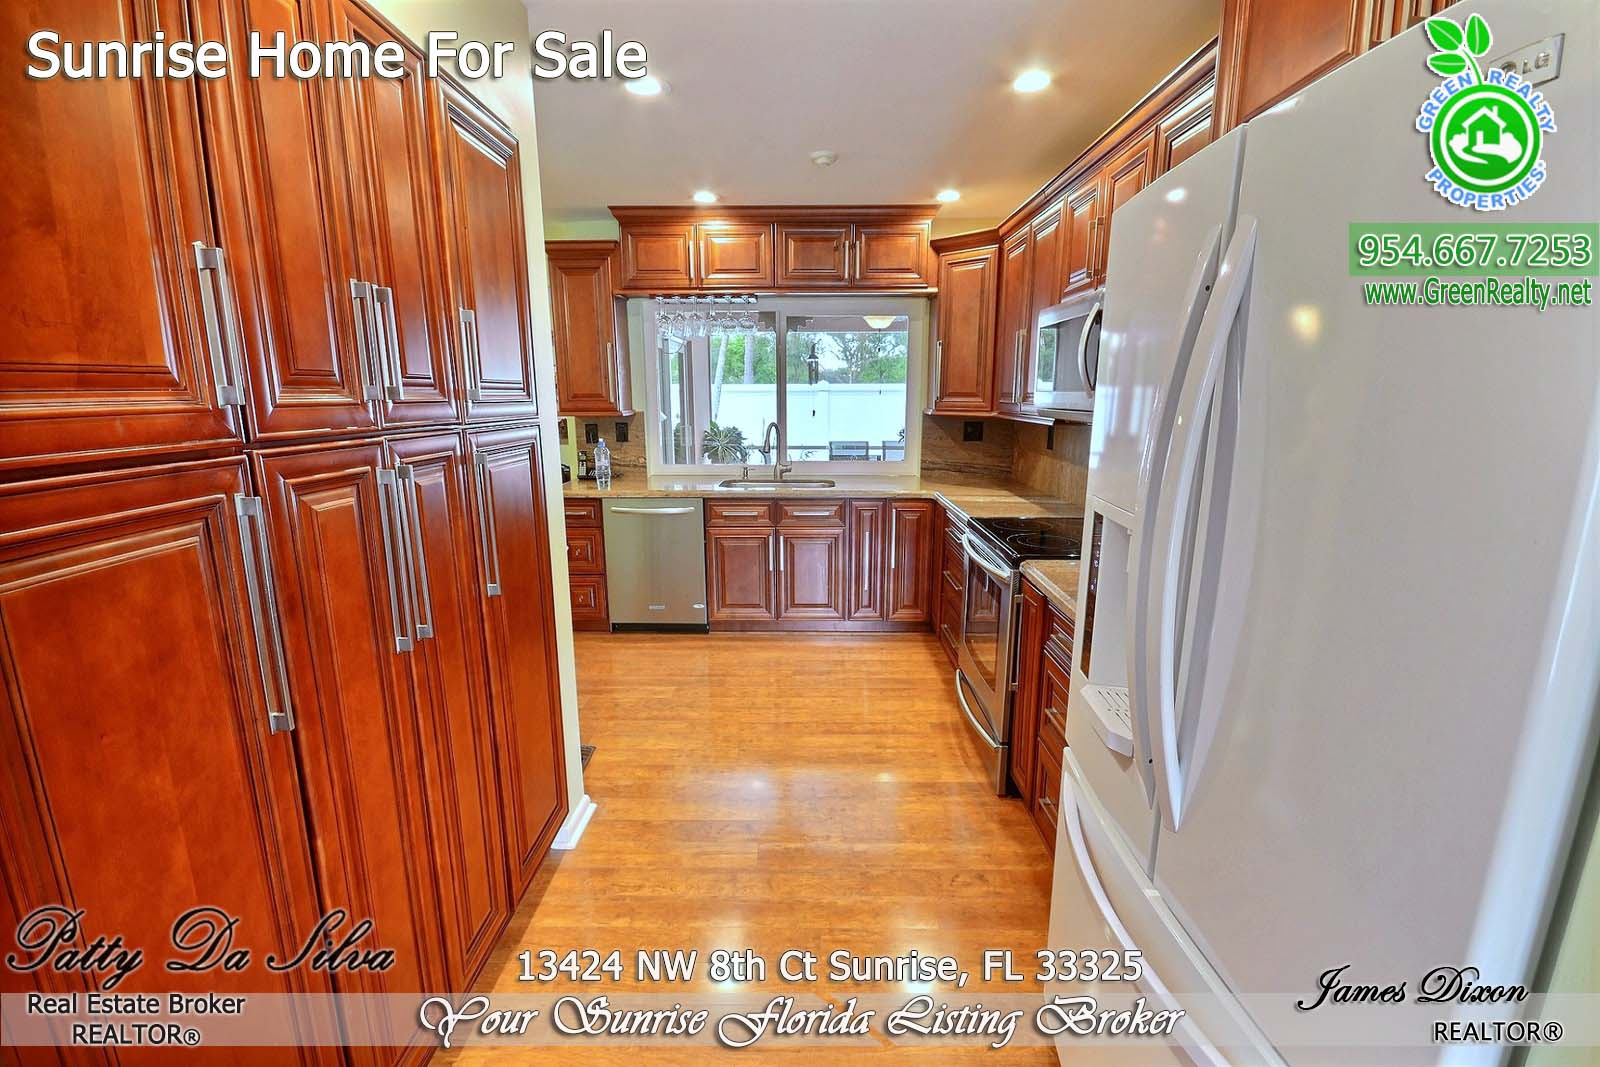 7 Homes For Sale in Sunrise Florida (1)